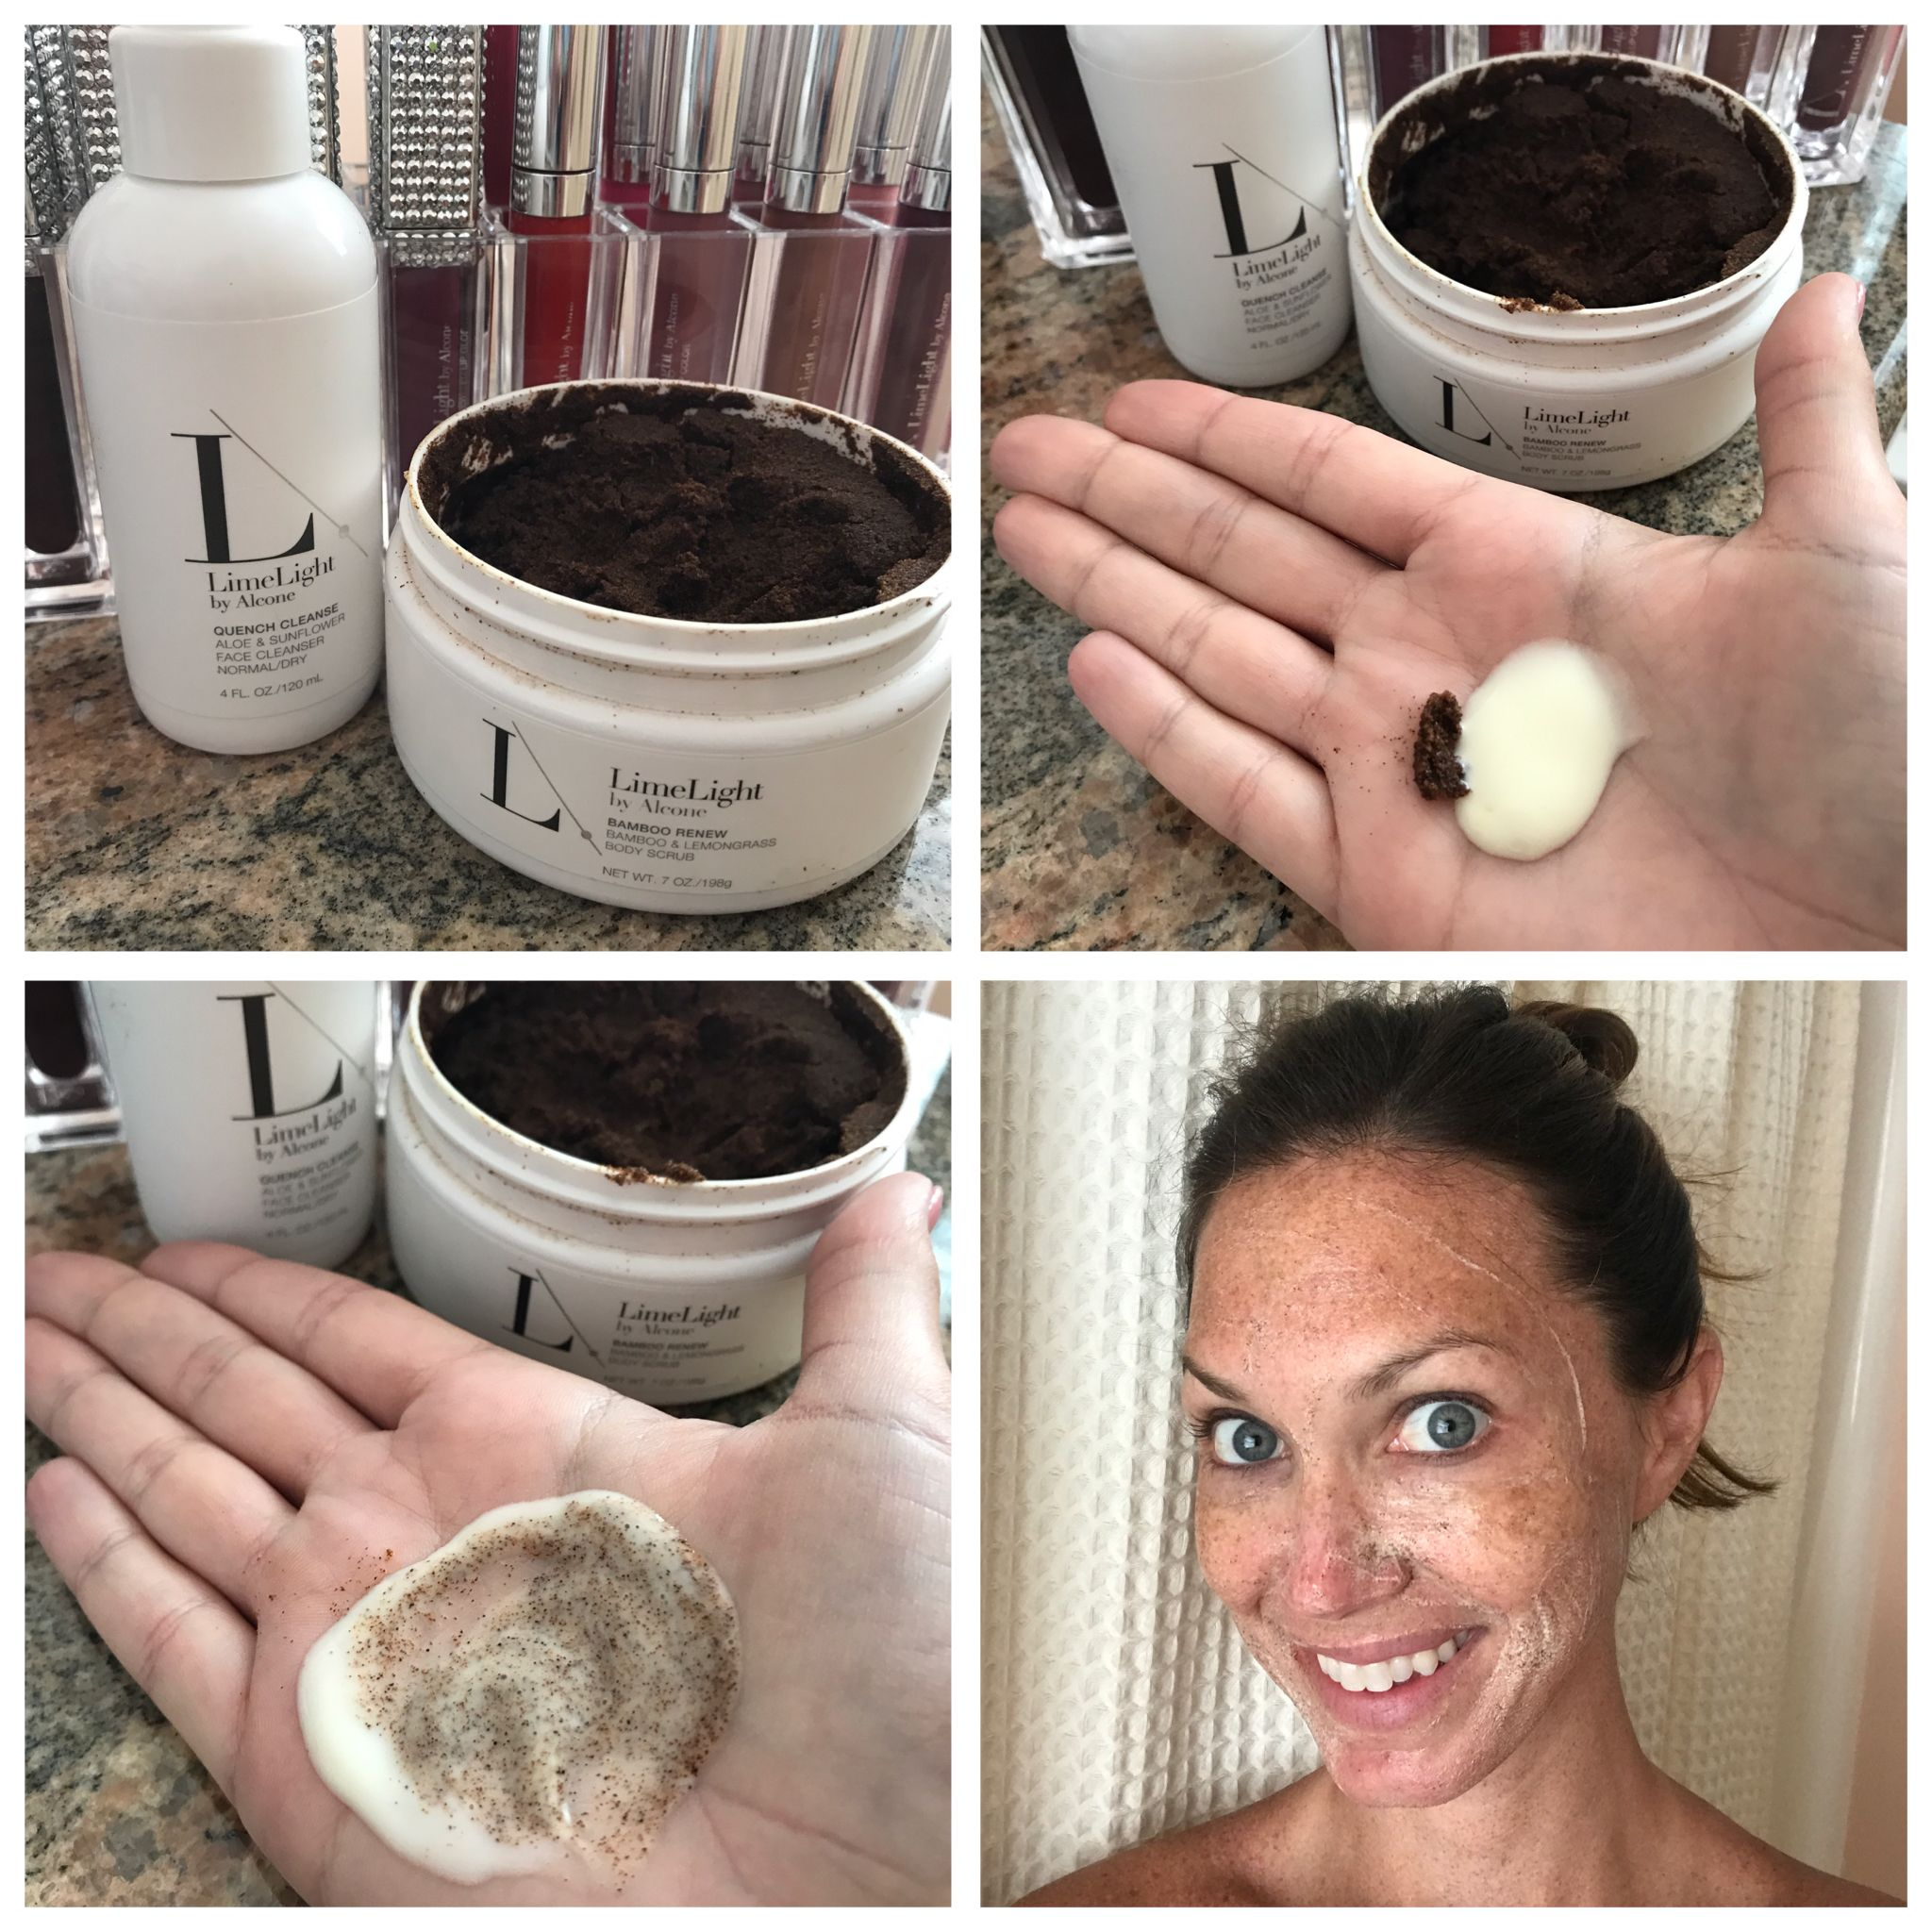 Get Rid Of The Dry Dead Skin I Love My Limelight By Alcone Skin Polish But Sometimes I Need A Little M Skin Care Exfoliation Skin Polish Lime Light By Alcone